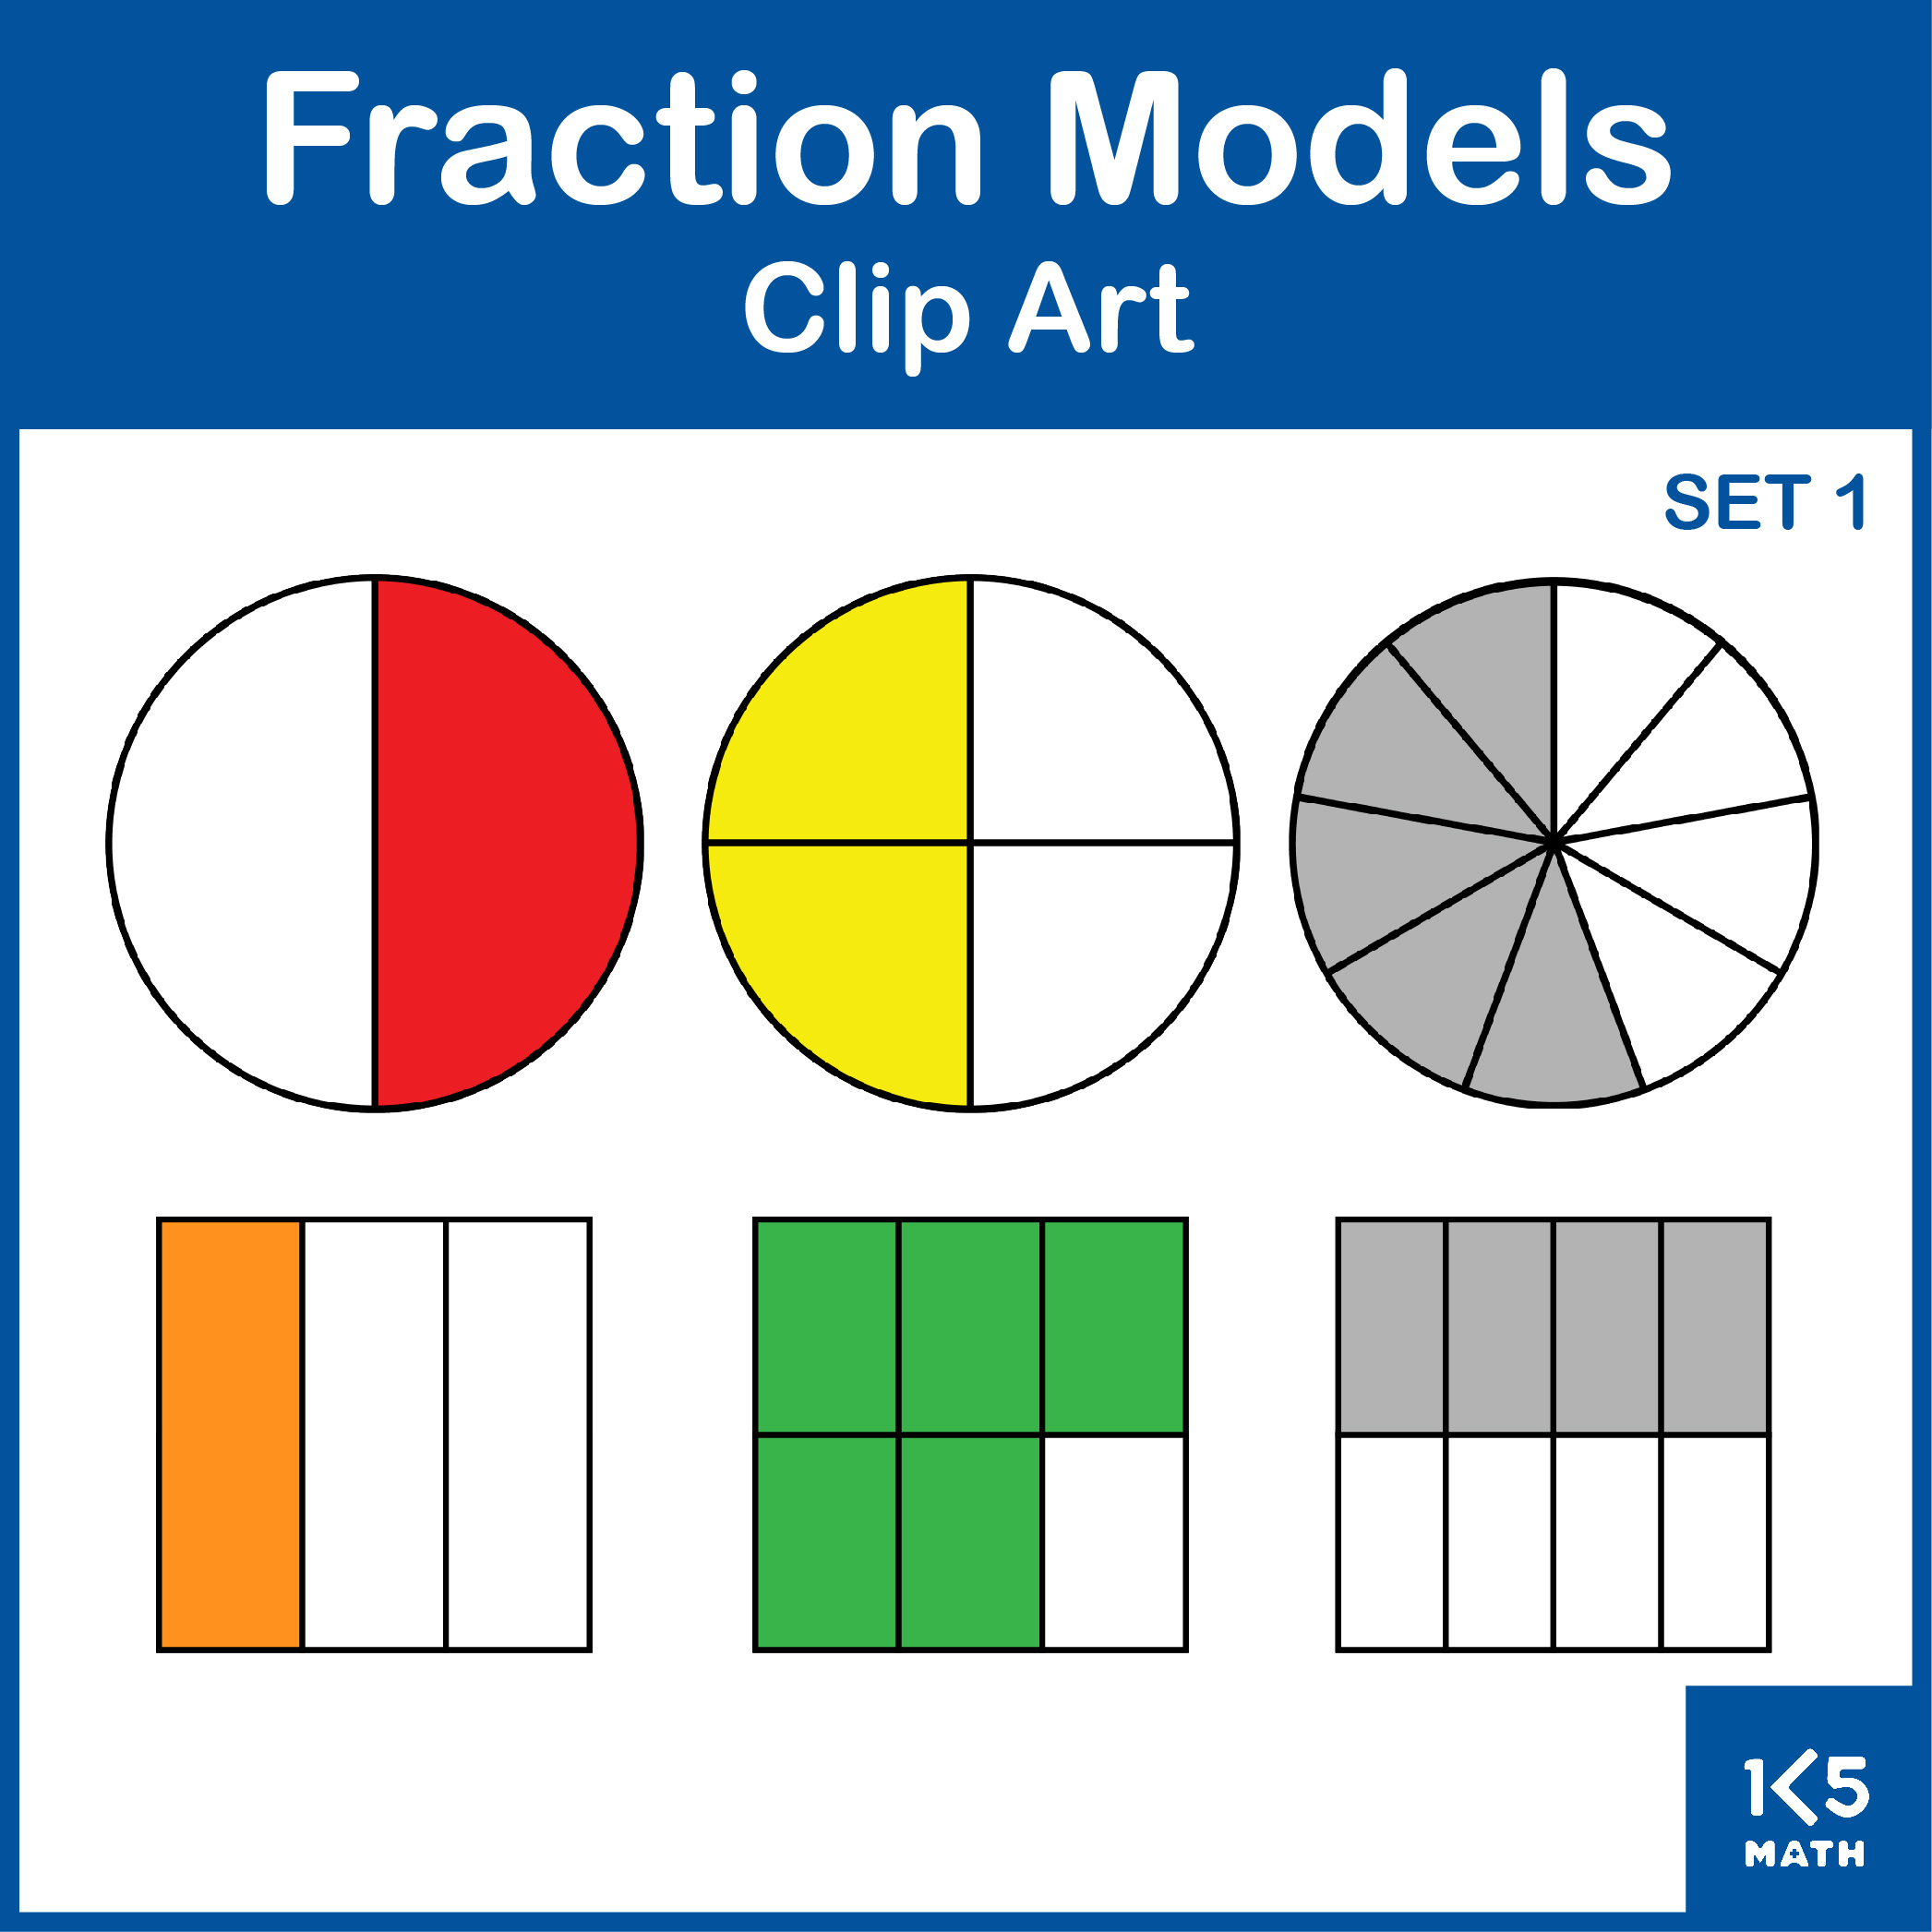 Fraction Models Clip Art